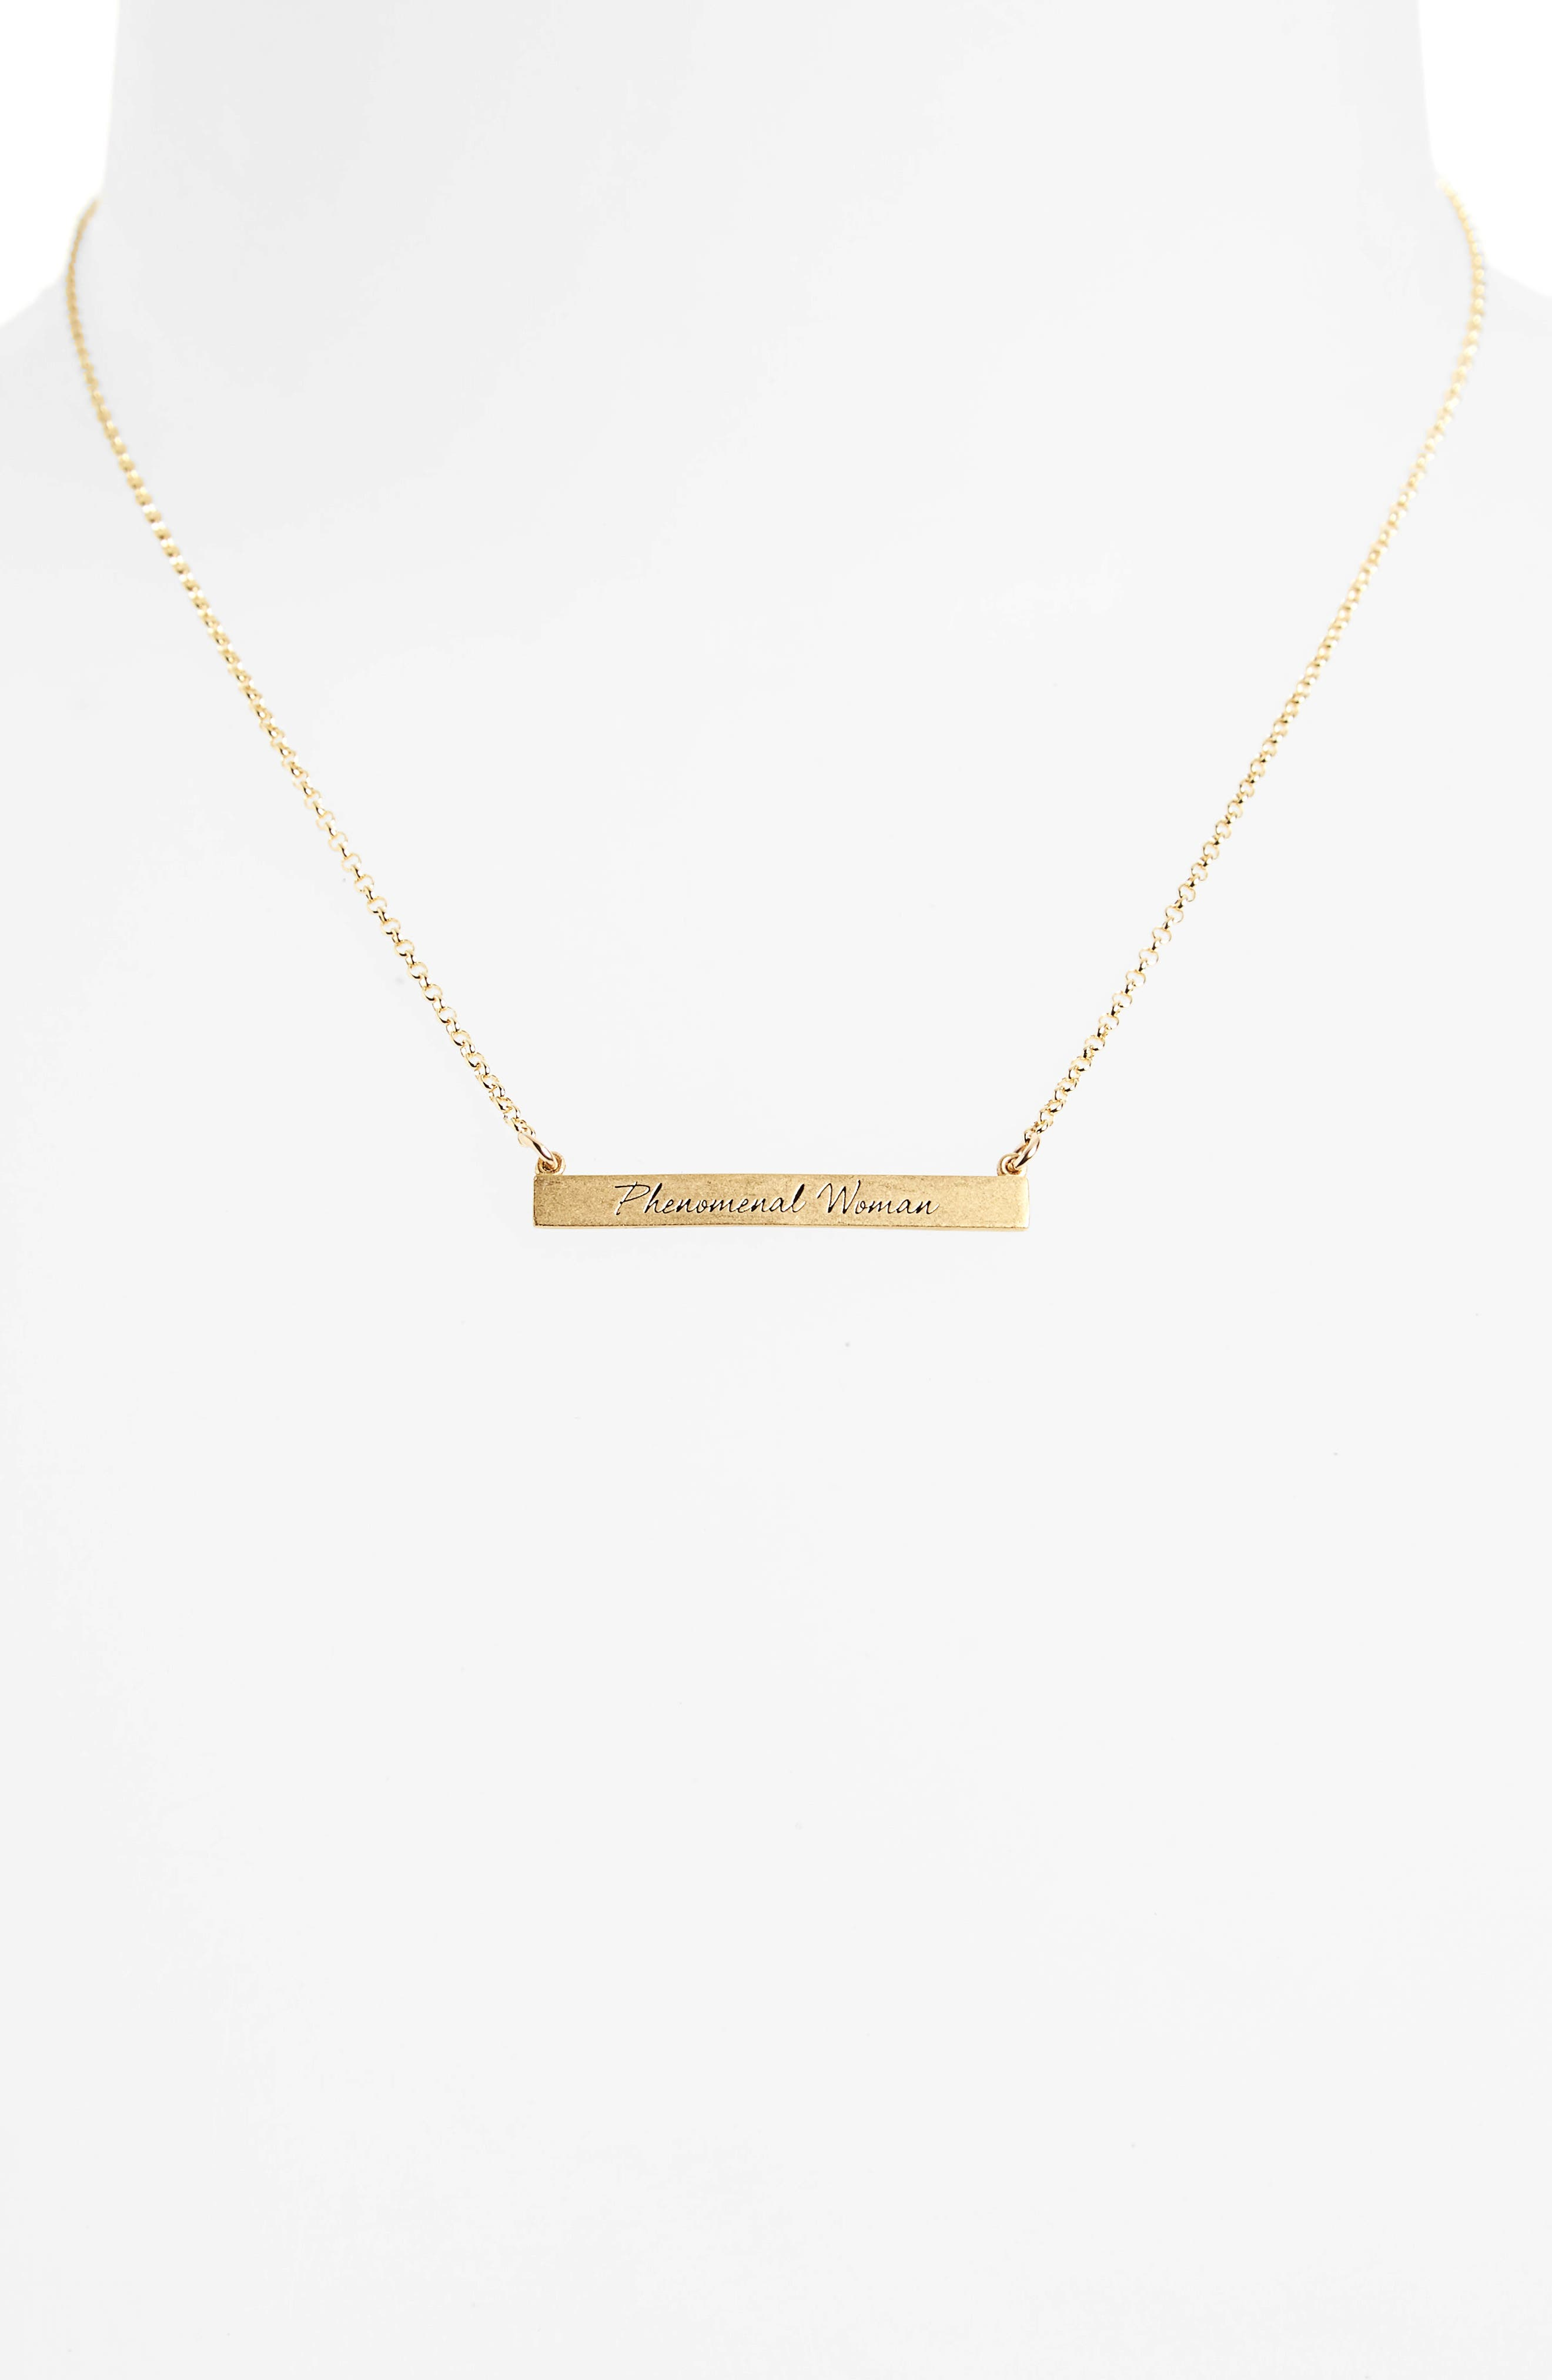 Legacy Collection - Phenomenal Women Bar Necklace,                             Alternate thumbnail 2, color,                             Gold